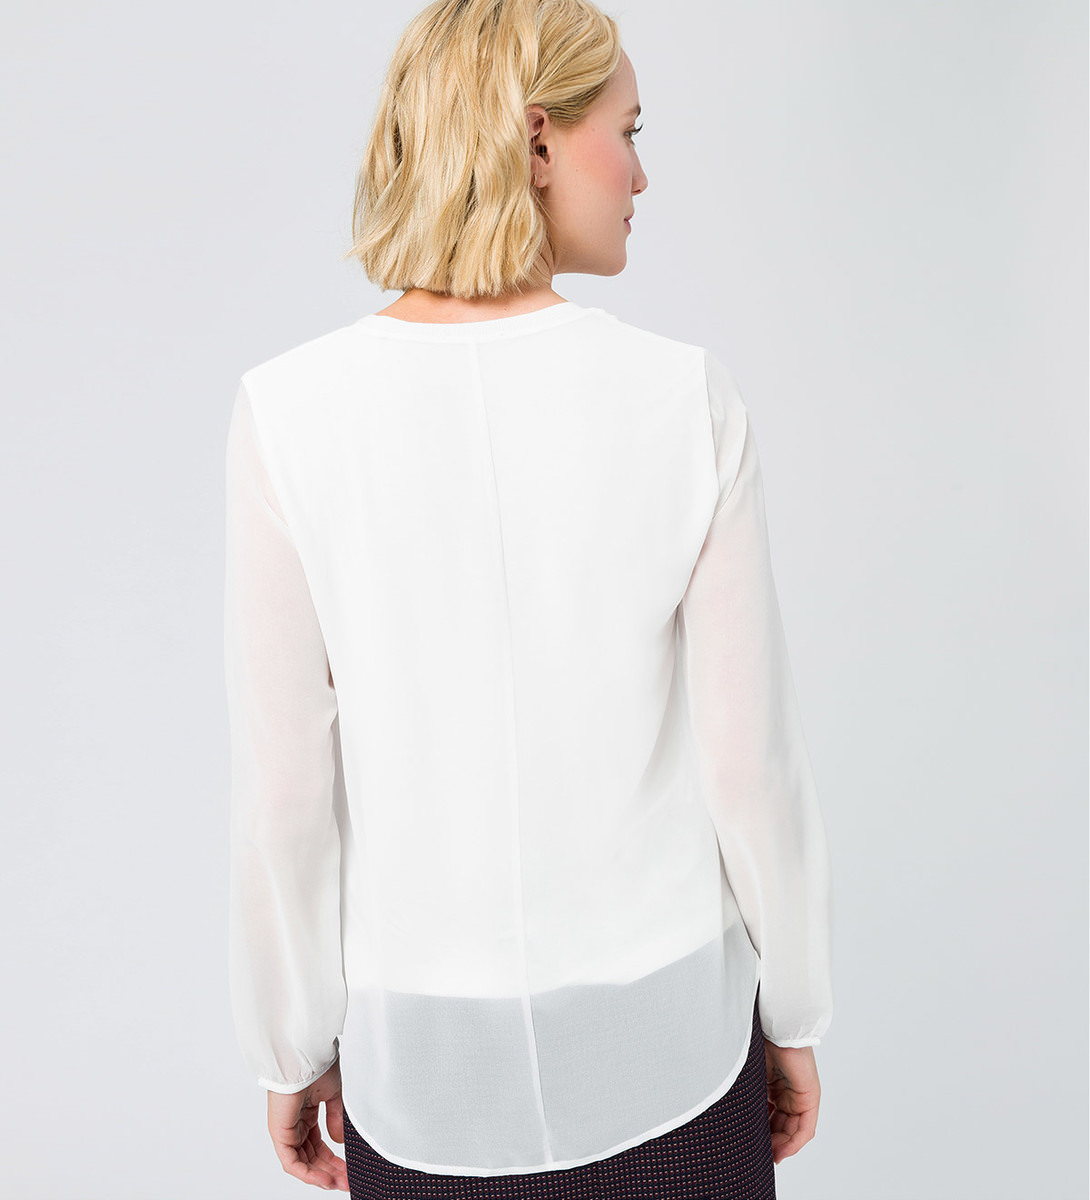 Bluse im Layering-Look in offwhite